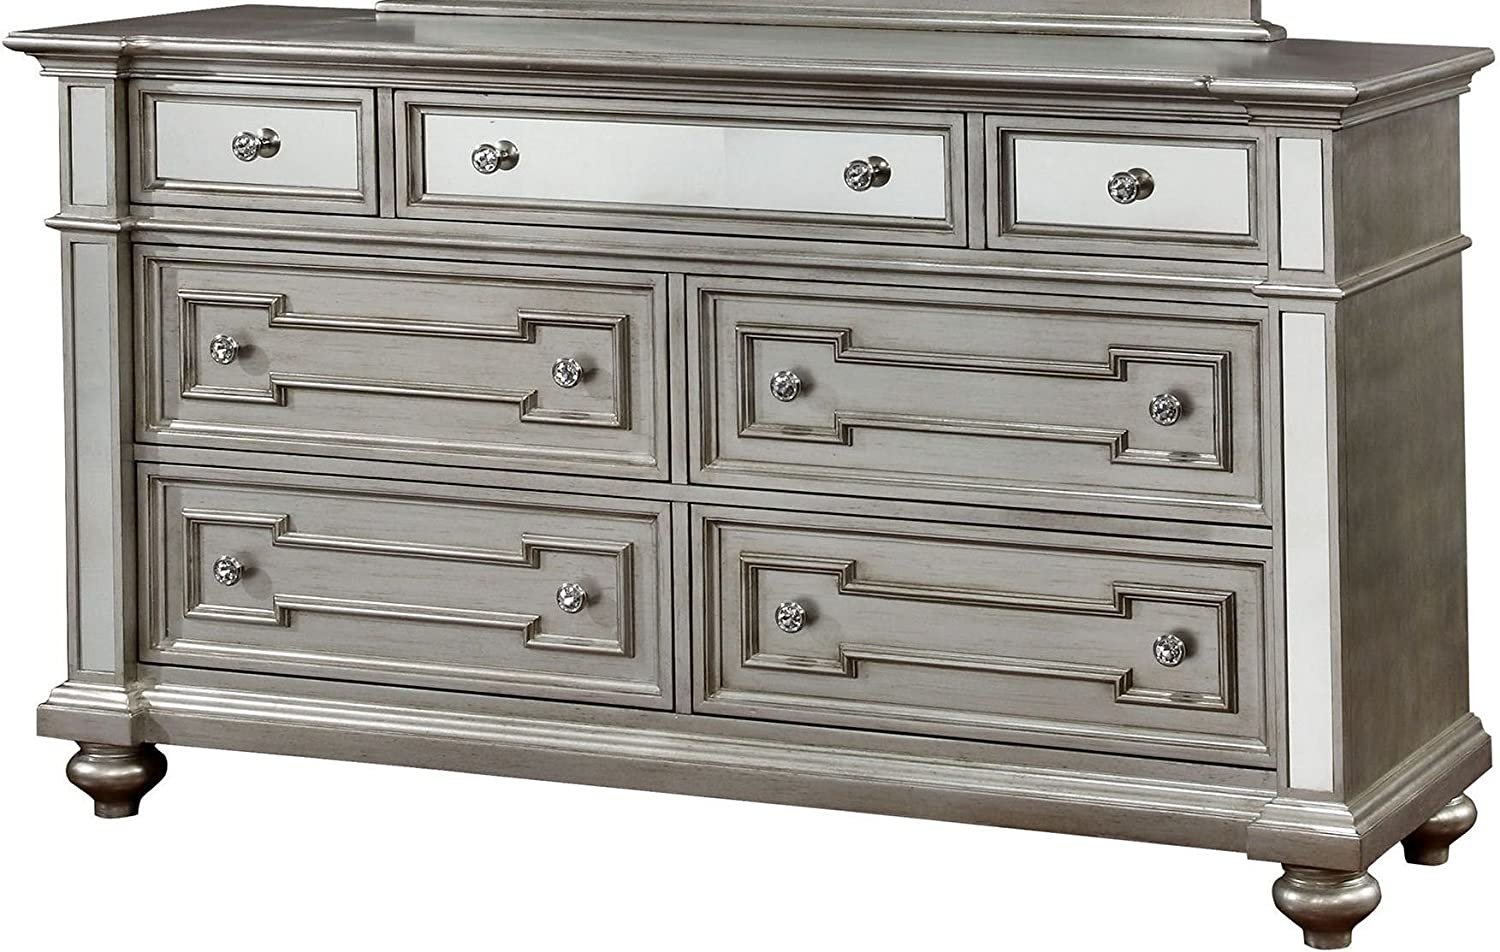 Amazon.com: Furniture of America Salamanca Silver Dresser ...